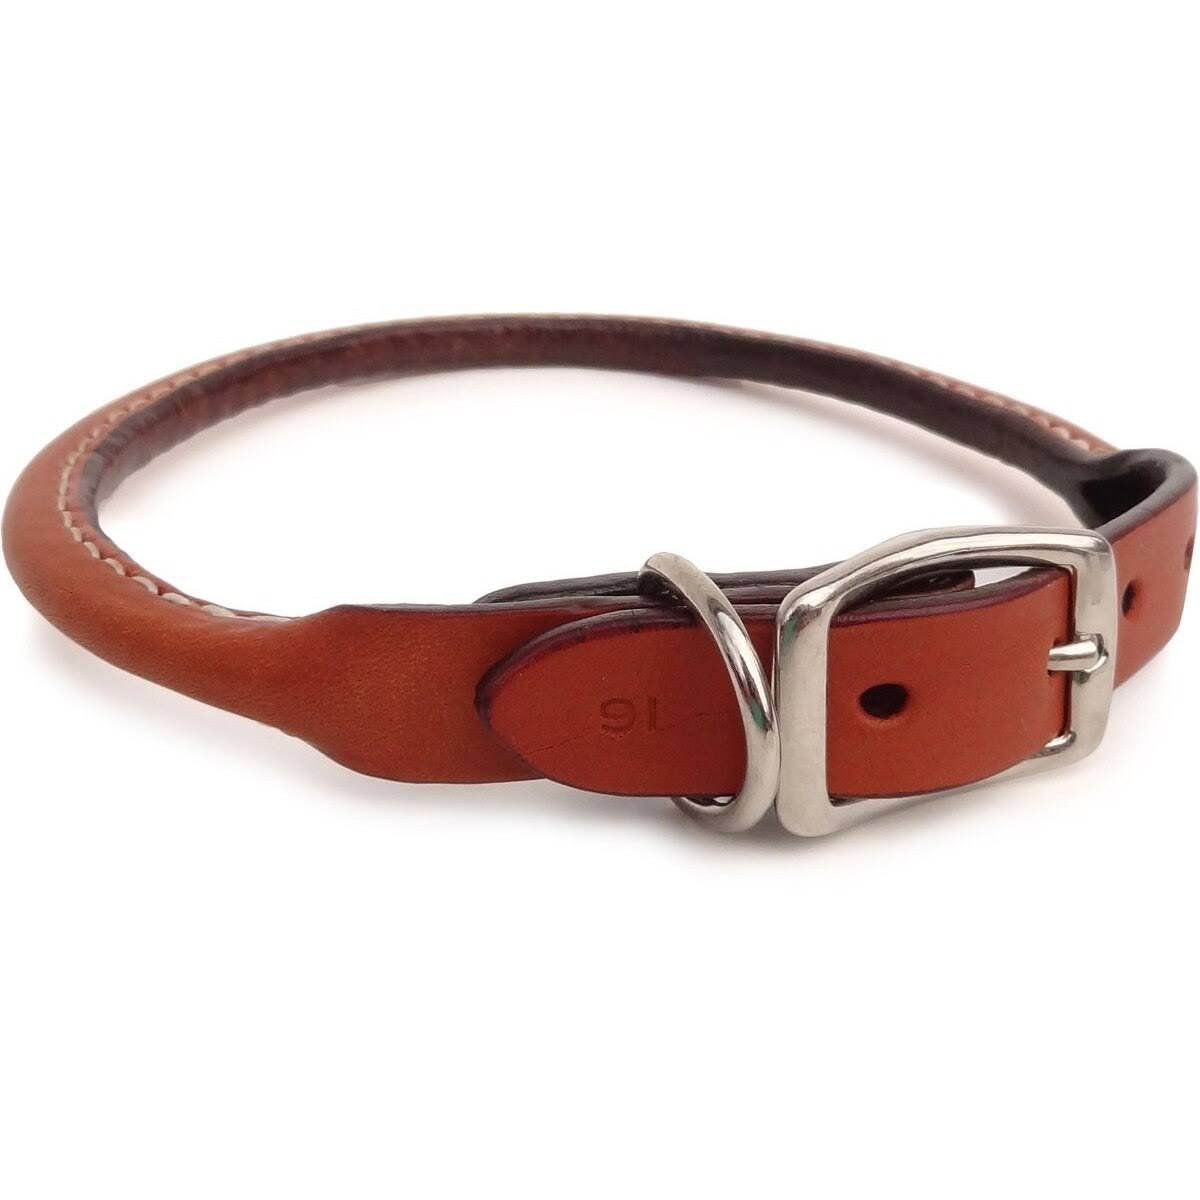 Auburn Leathercrafters Durable Leather Classic Rolled Dog Pet Collars - Tan, 10-12""